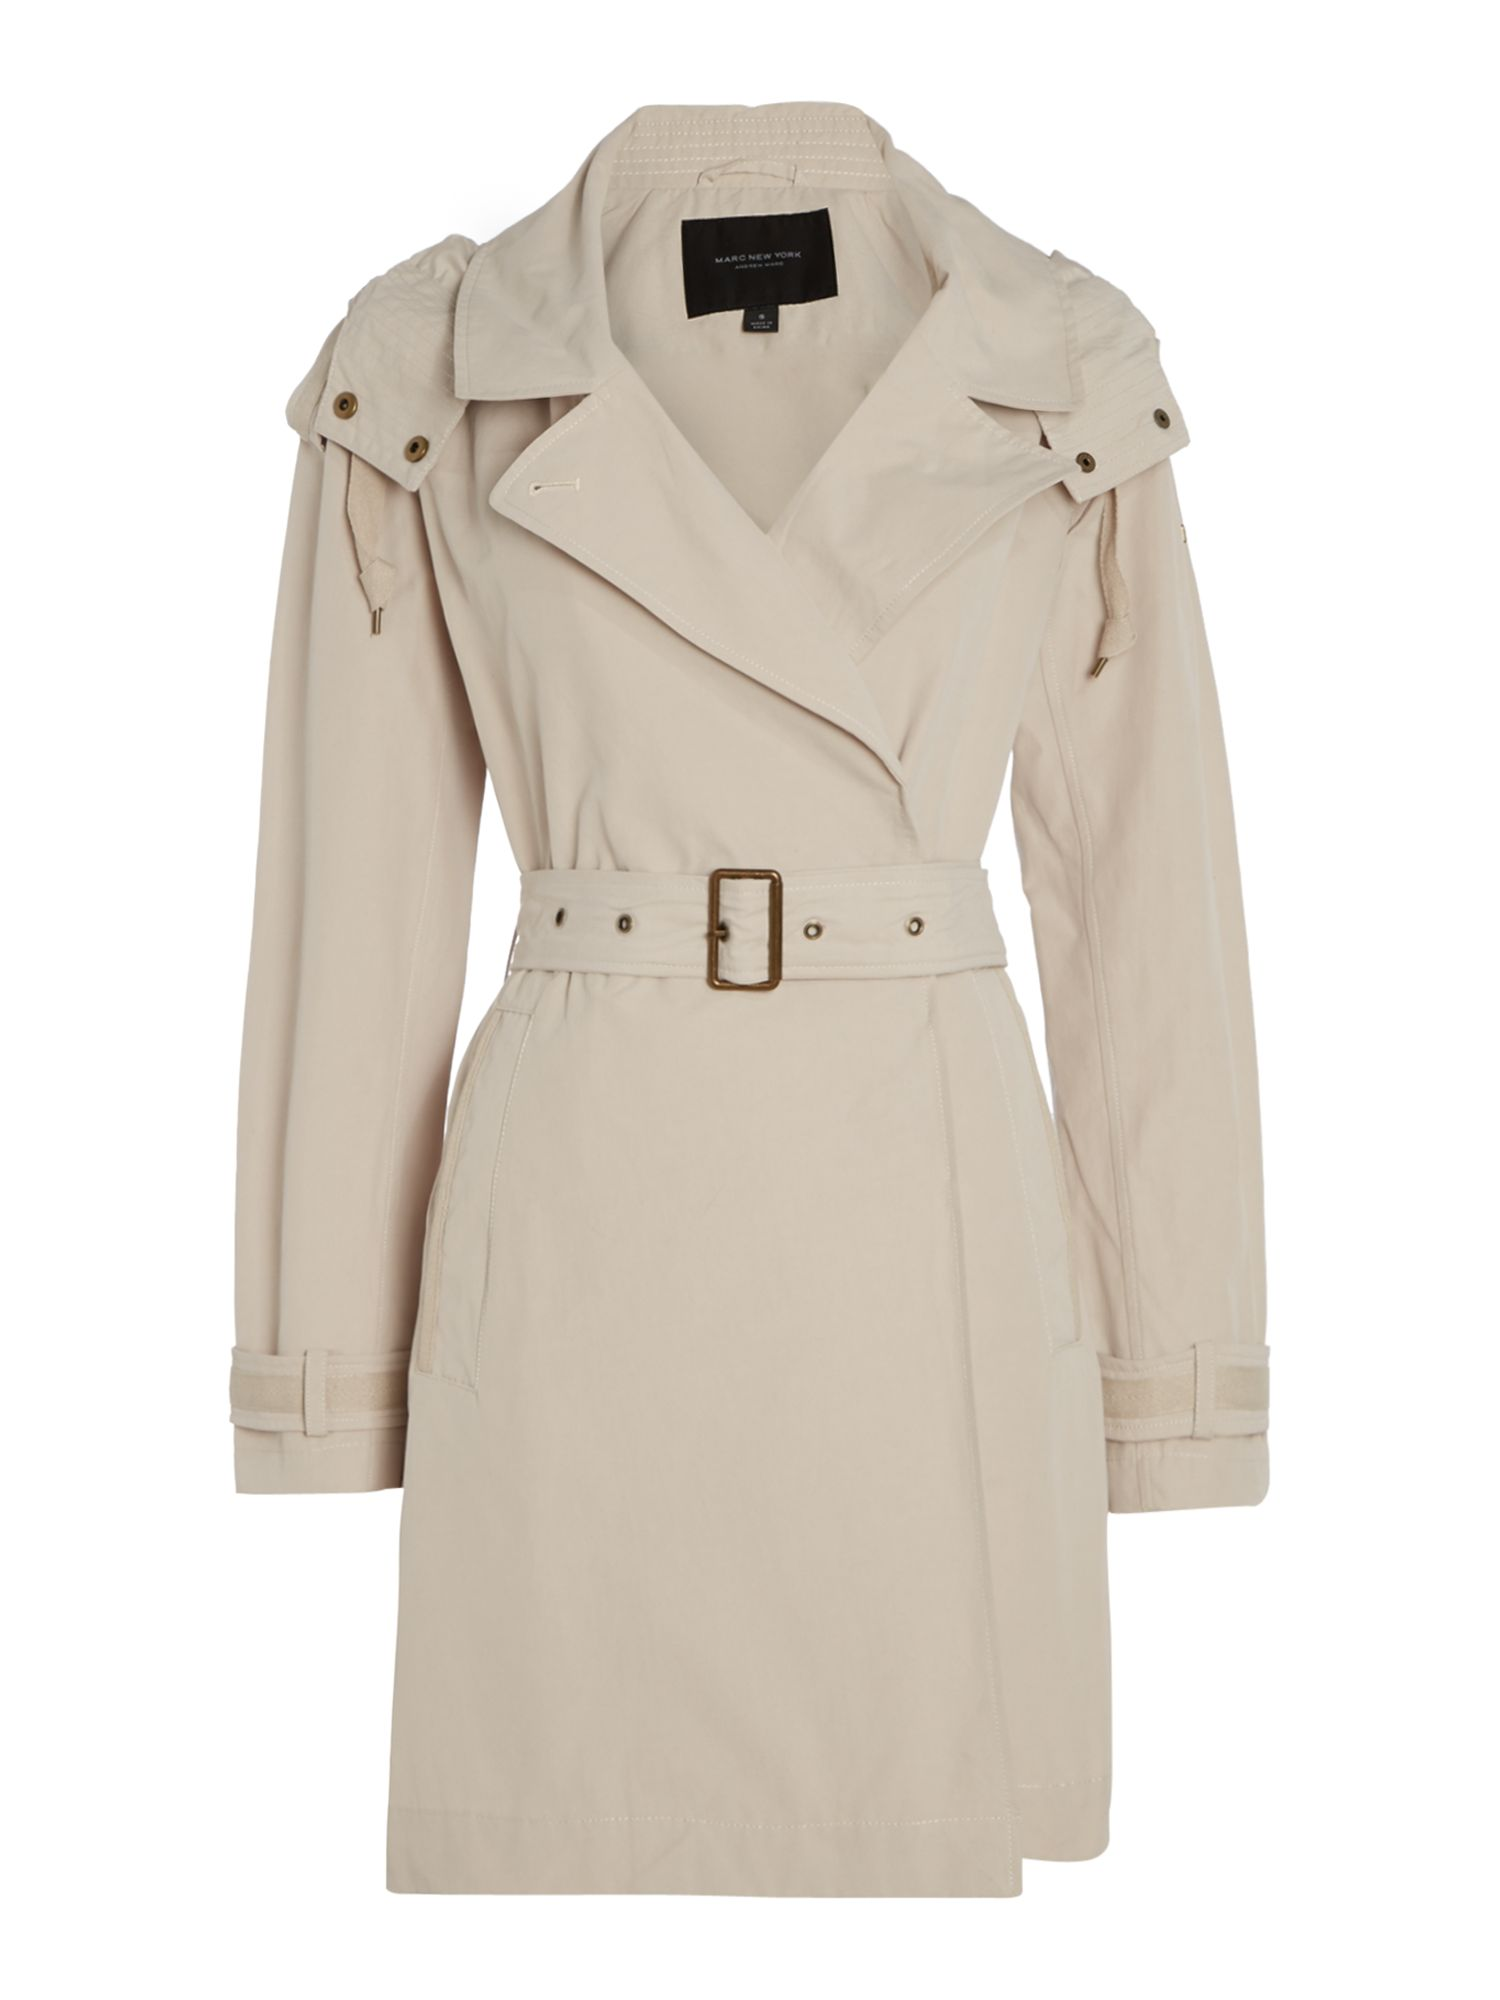 Andrew Marc BROOKE trench coat with hood White